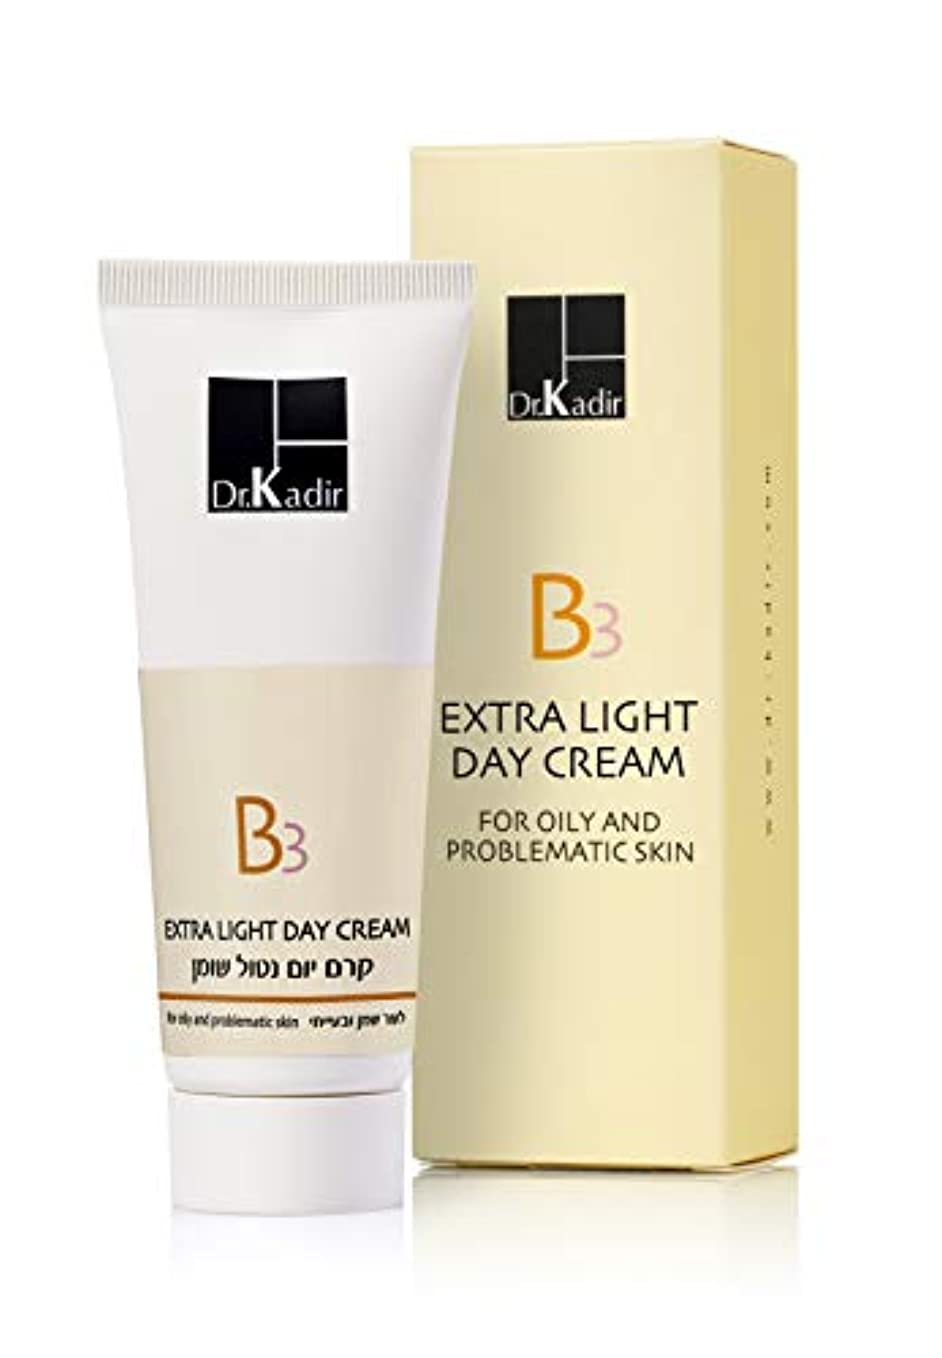 考古学的な過半数振動するDr. Kadir B3 Extra Light Day Cream for Oily and Problematic Skin 75ml